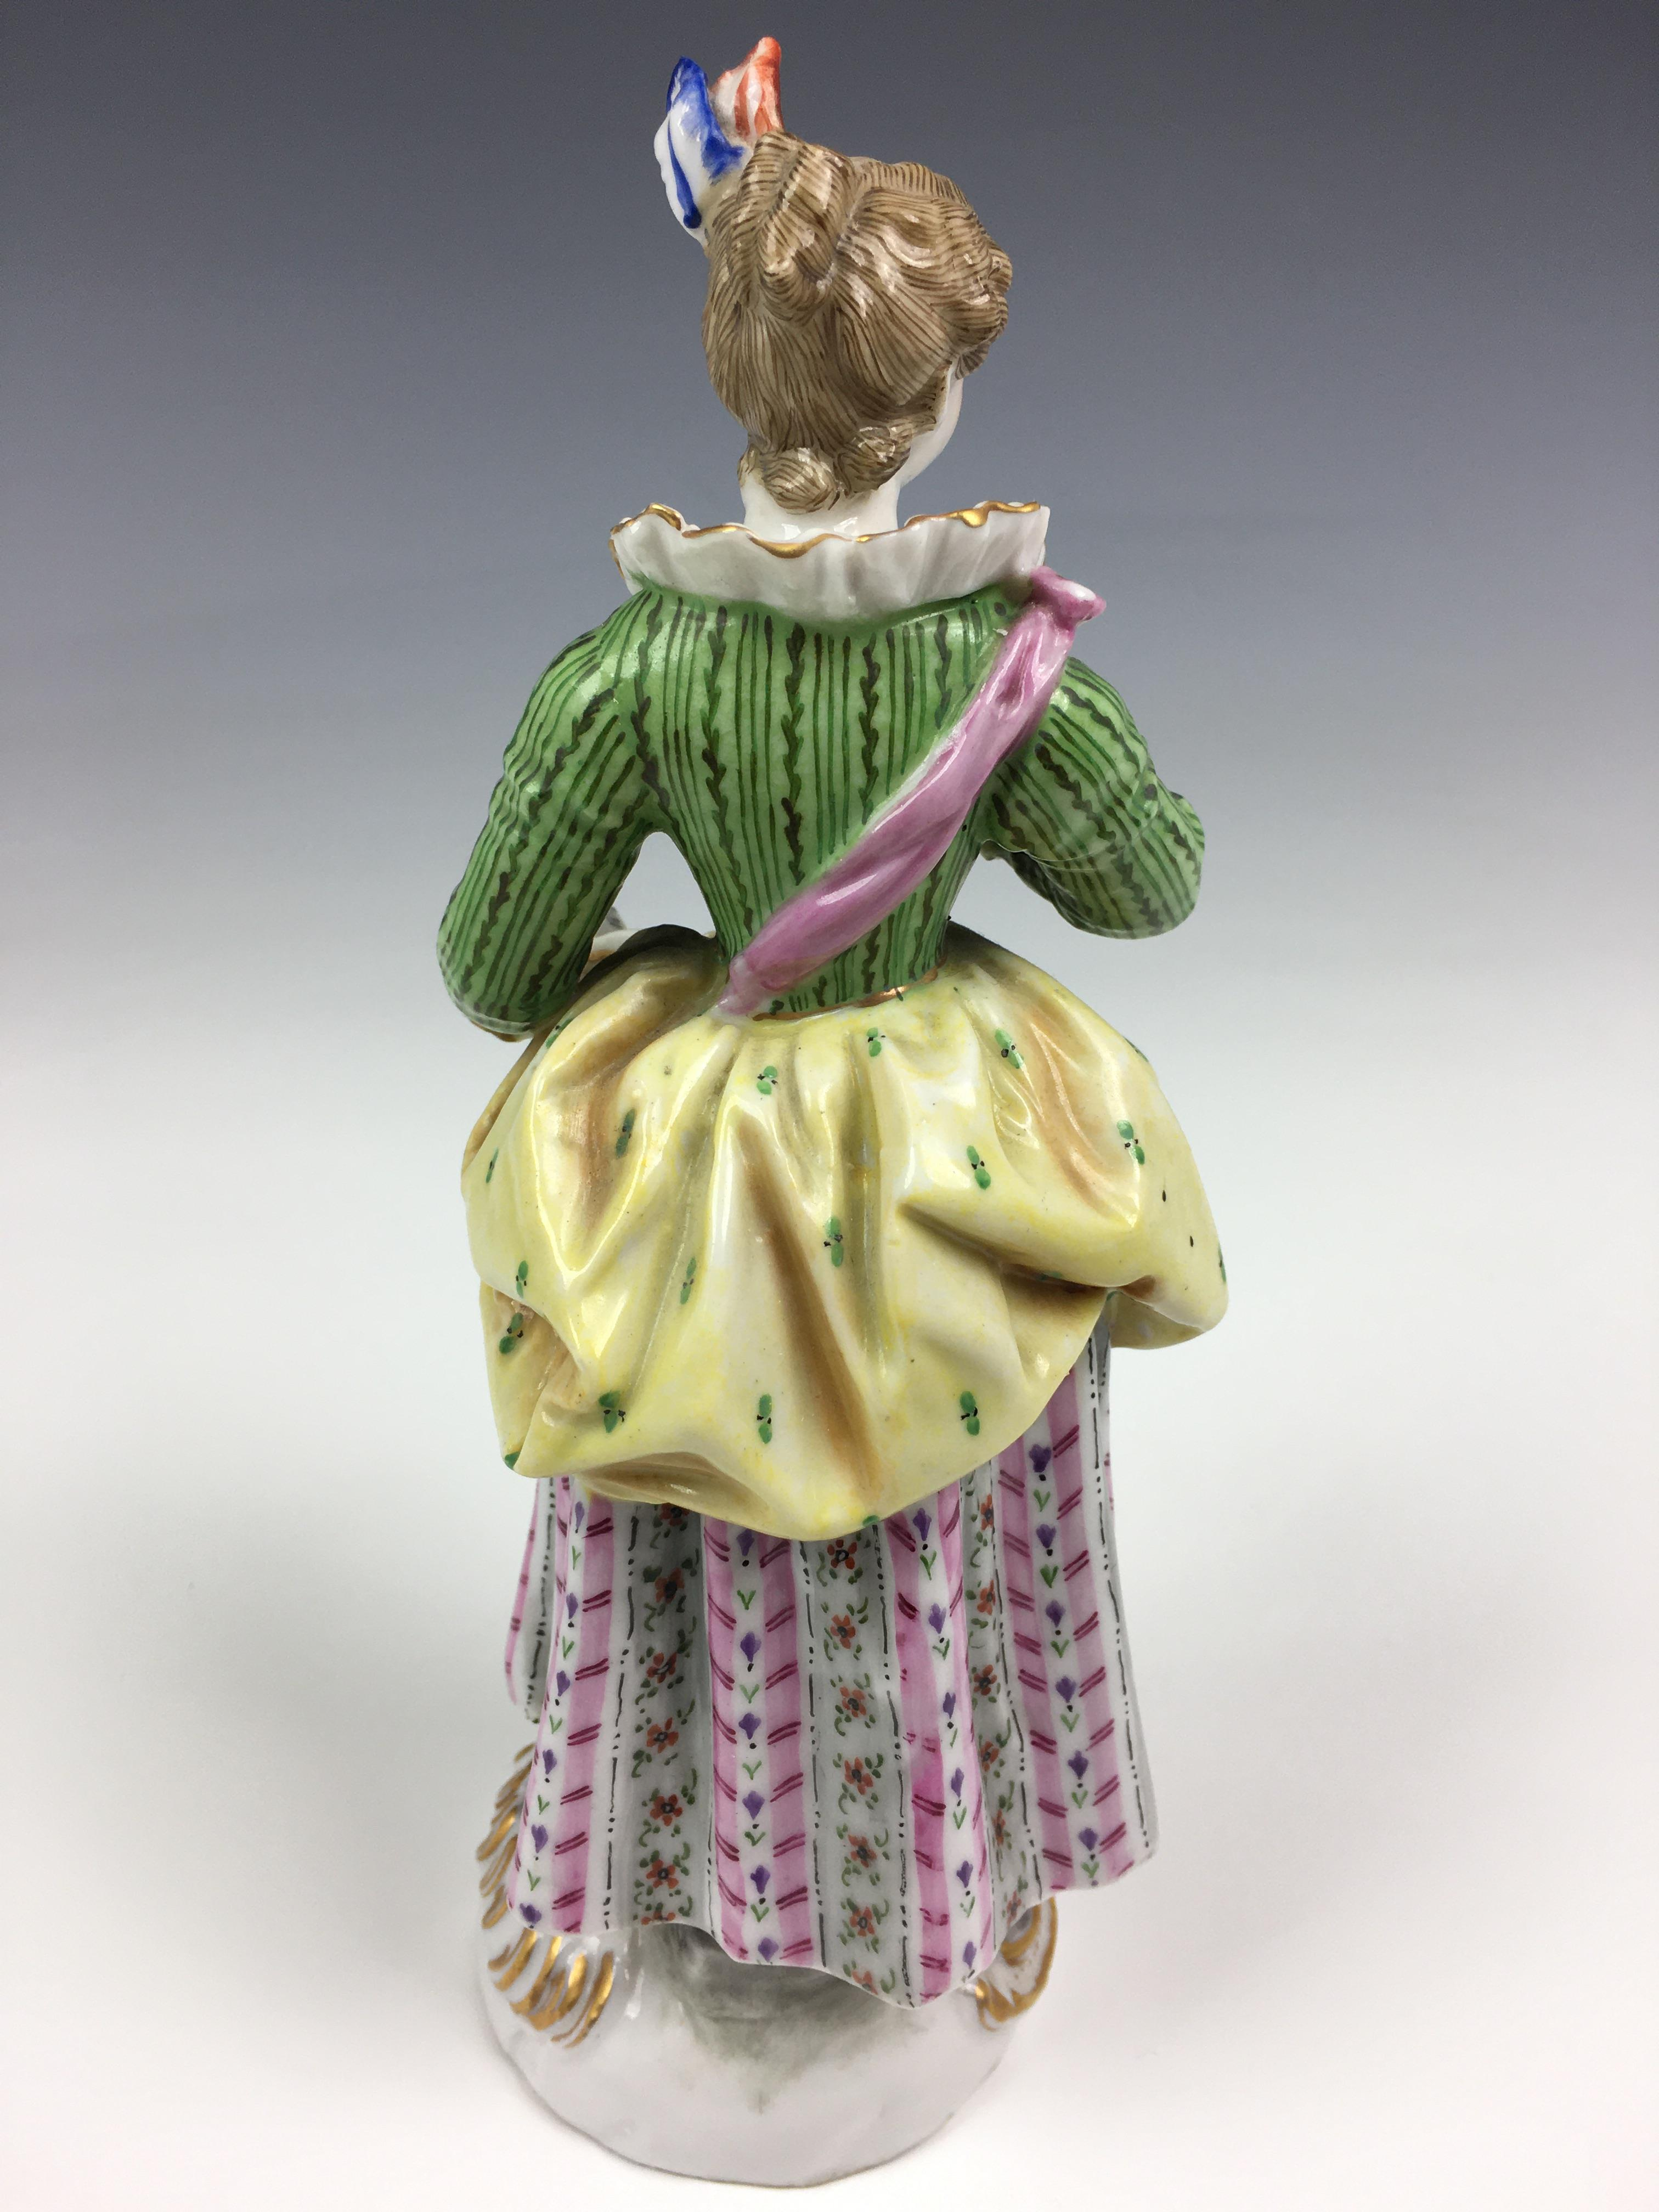 Lot 59A - A Meissen style figure of a girl holding a music book, early 20th century, Continental, in a green